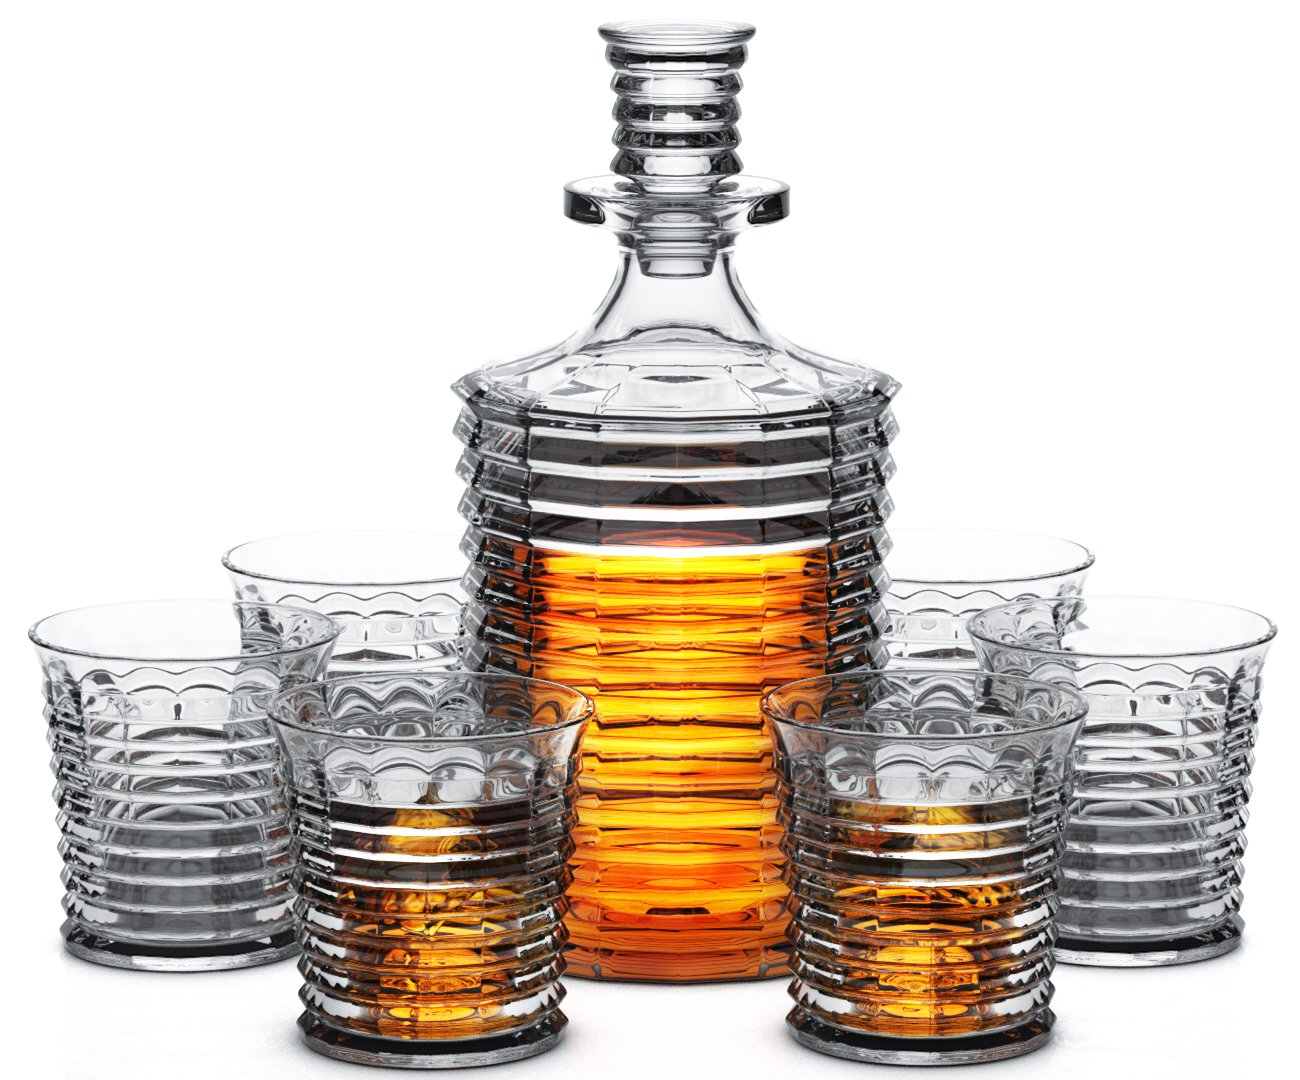 Miko Crystal Decanter Set With 6 Double Old Fashioned Glasses- Lead Free Crystal (Fort William)